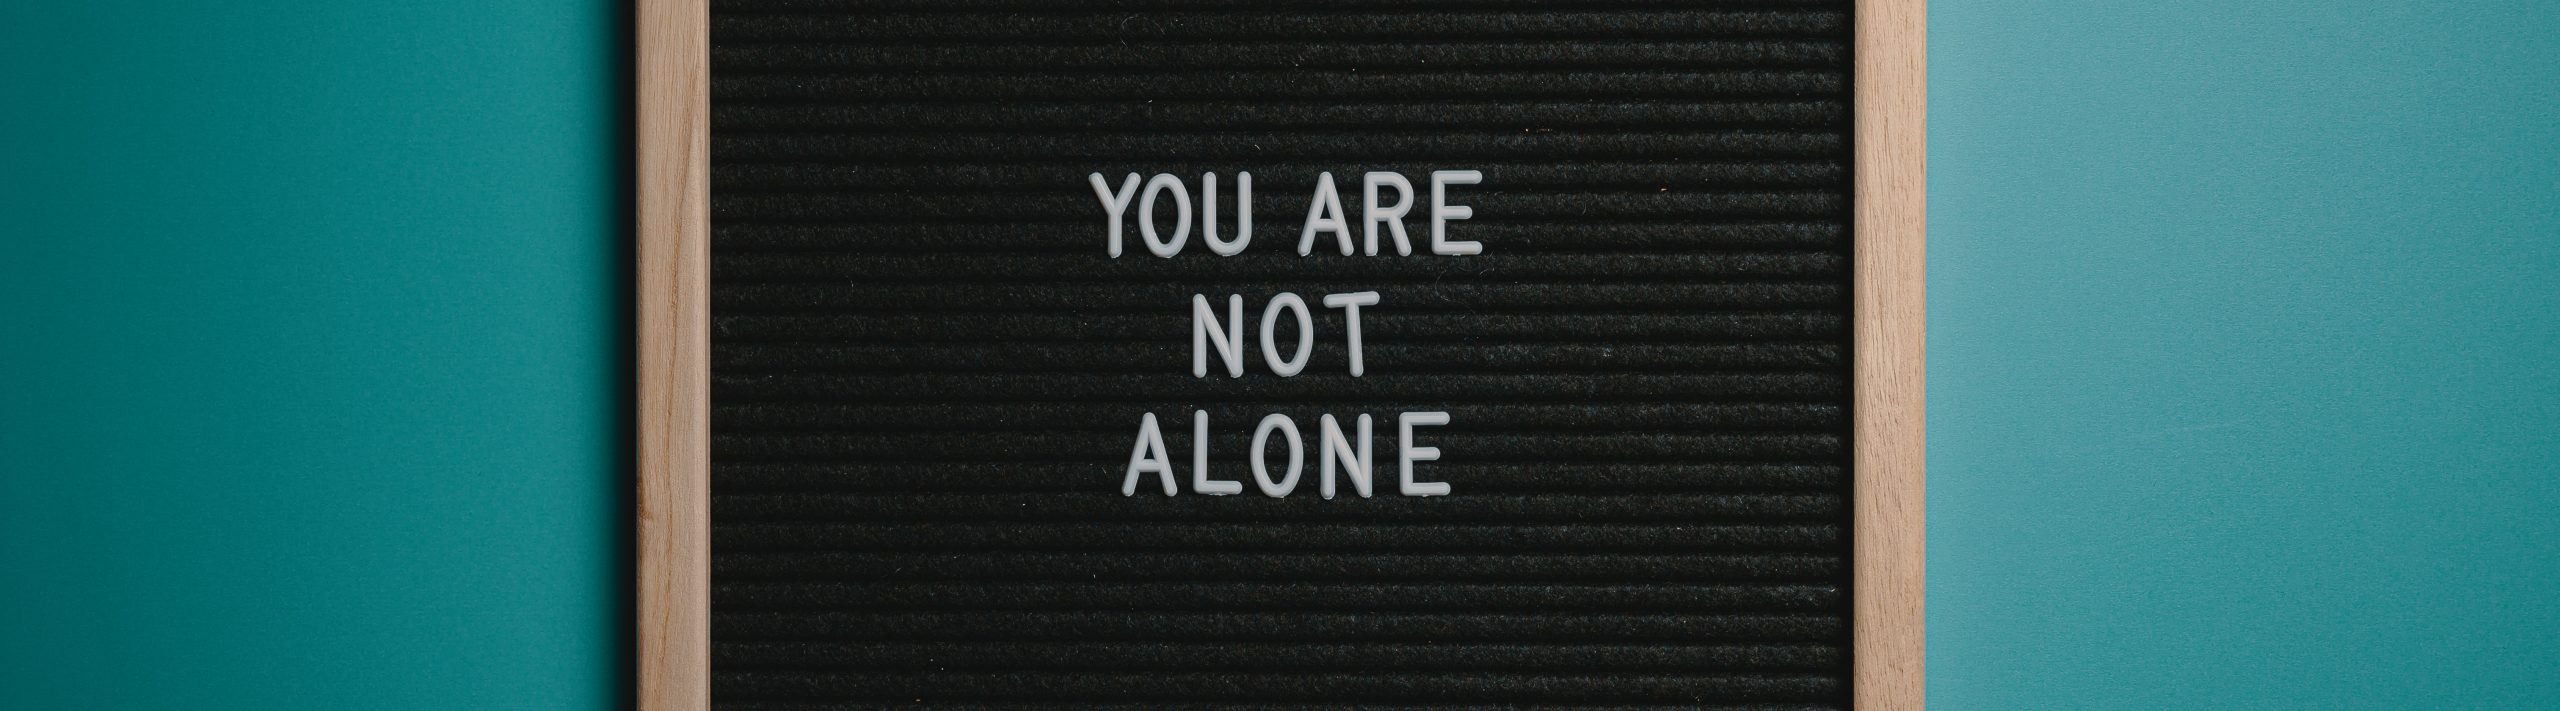 you-are-not-alone-quote-board-on-brown-wooden-frame-2821220_banner